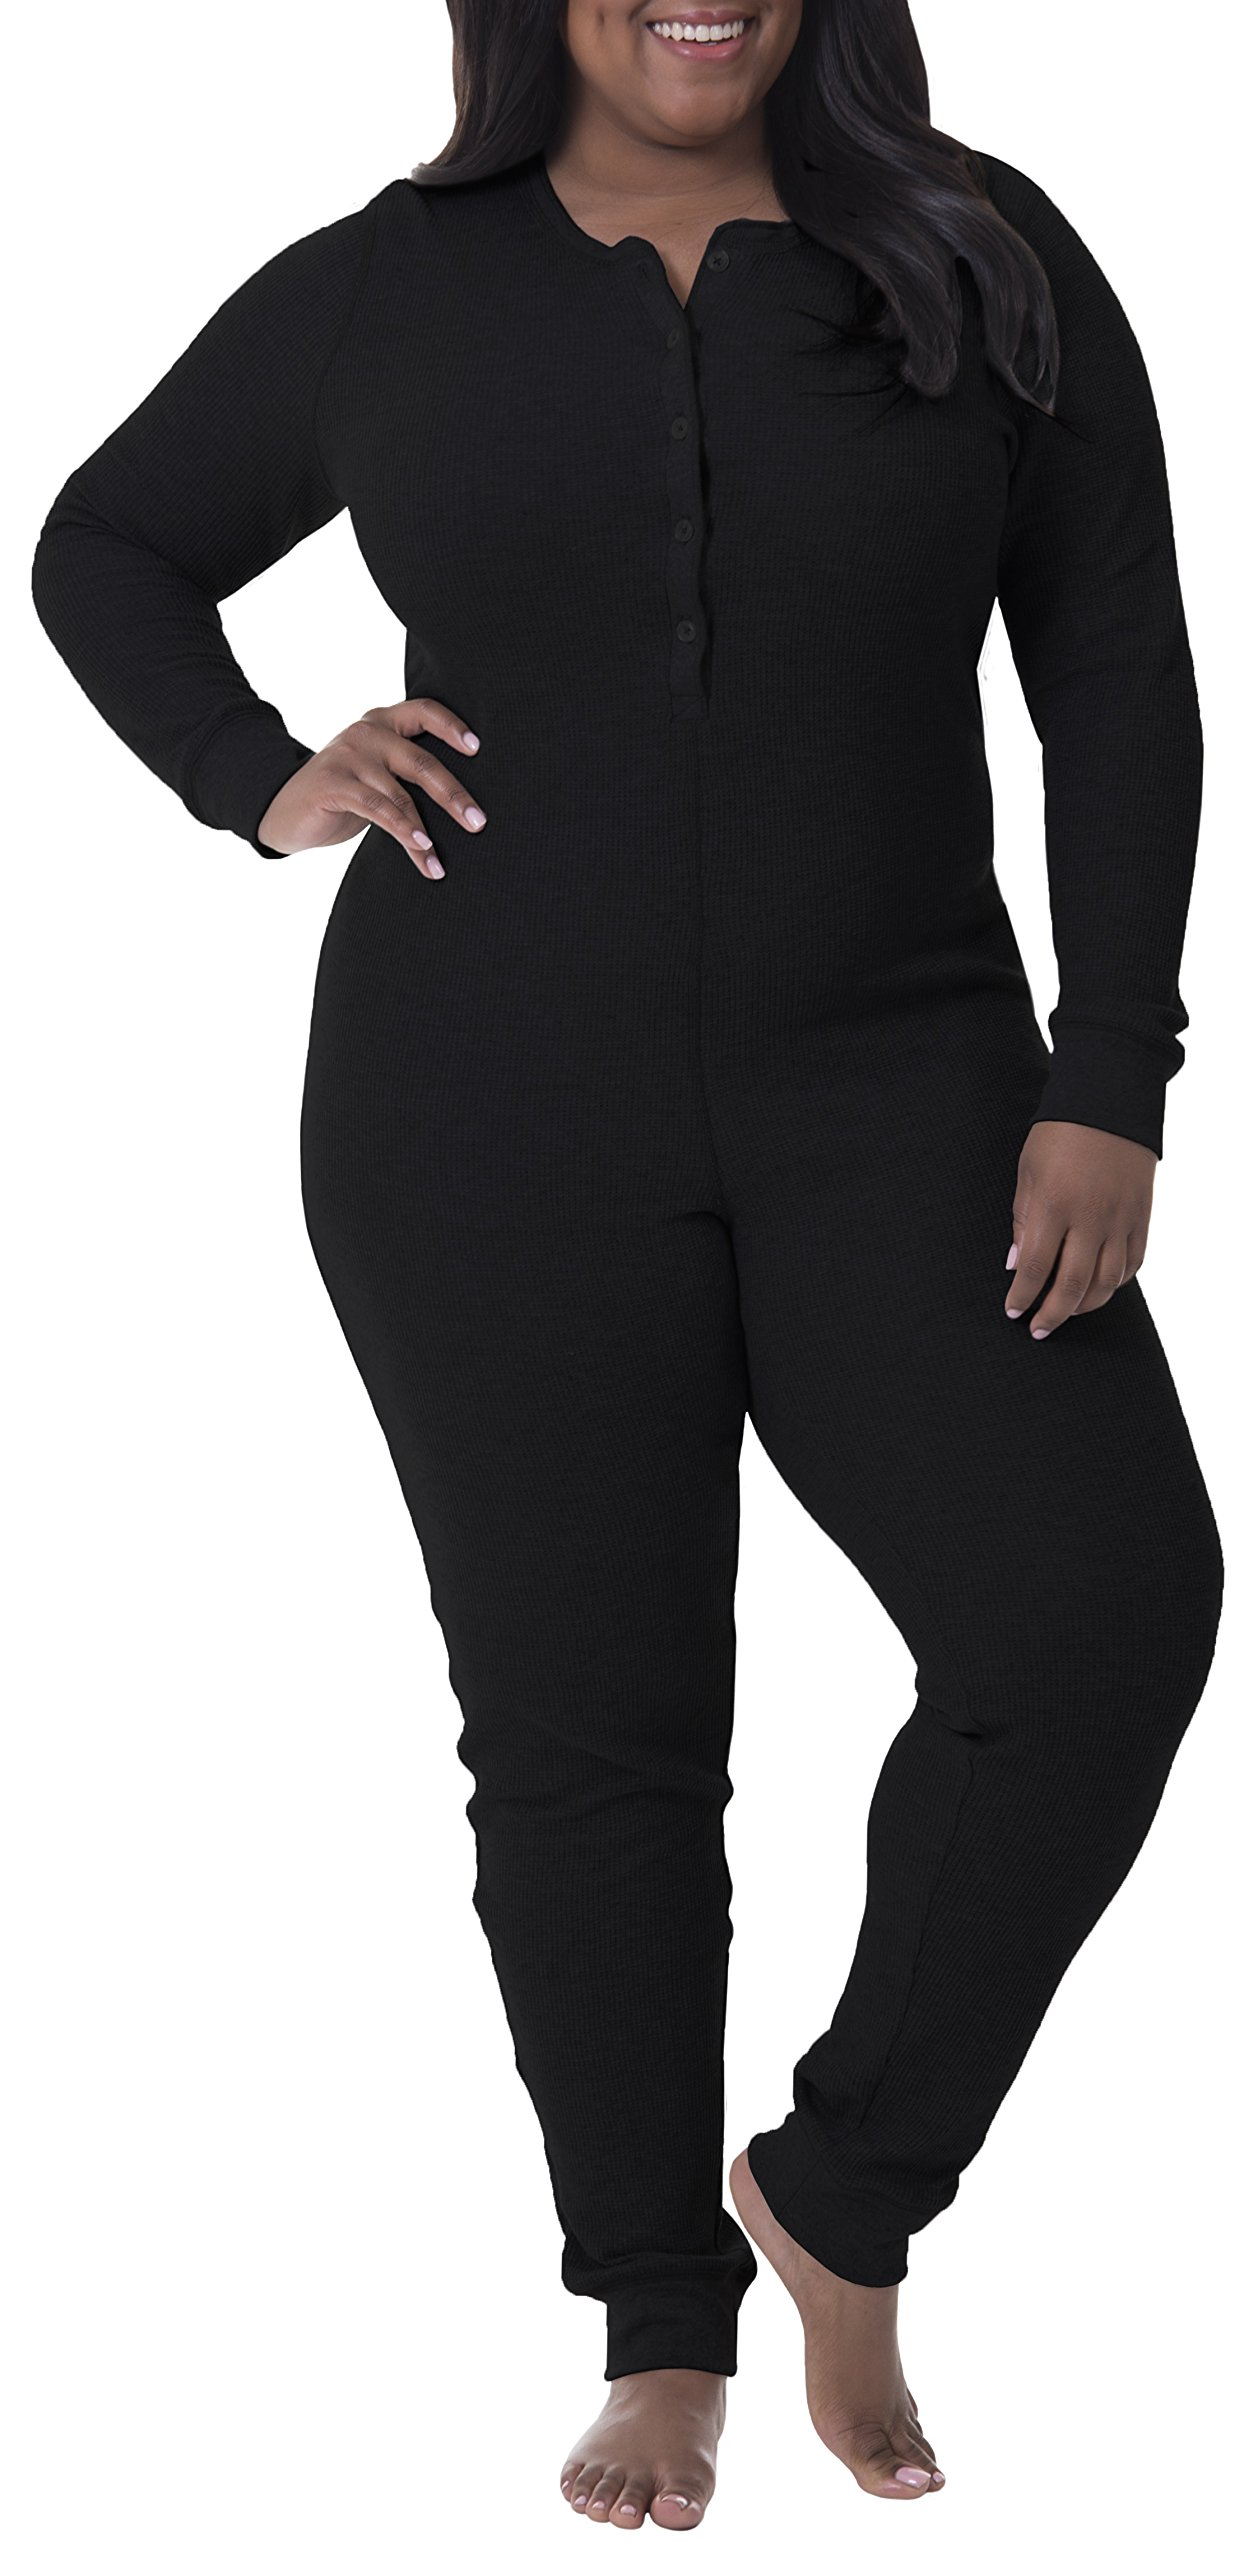 Fruit of the Loom Women's Plus Size Fit for Me Waffle Thermal Union Suit, Black Soot, 2X